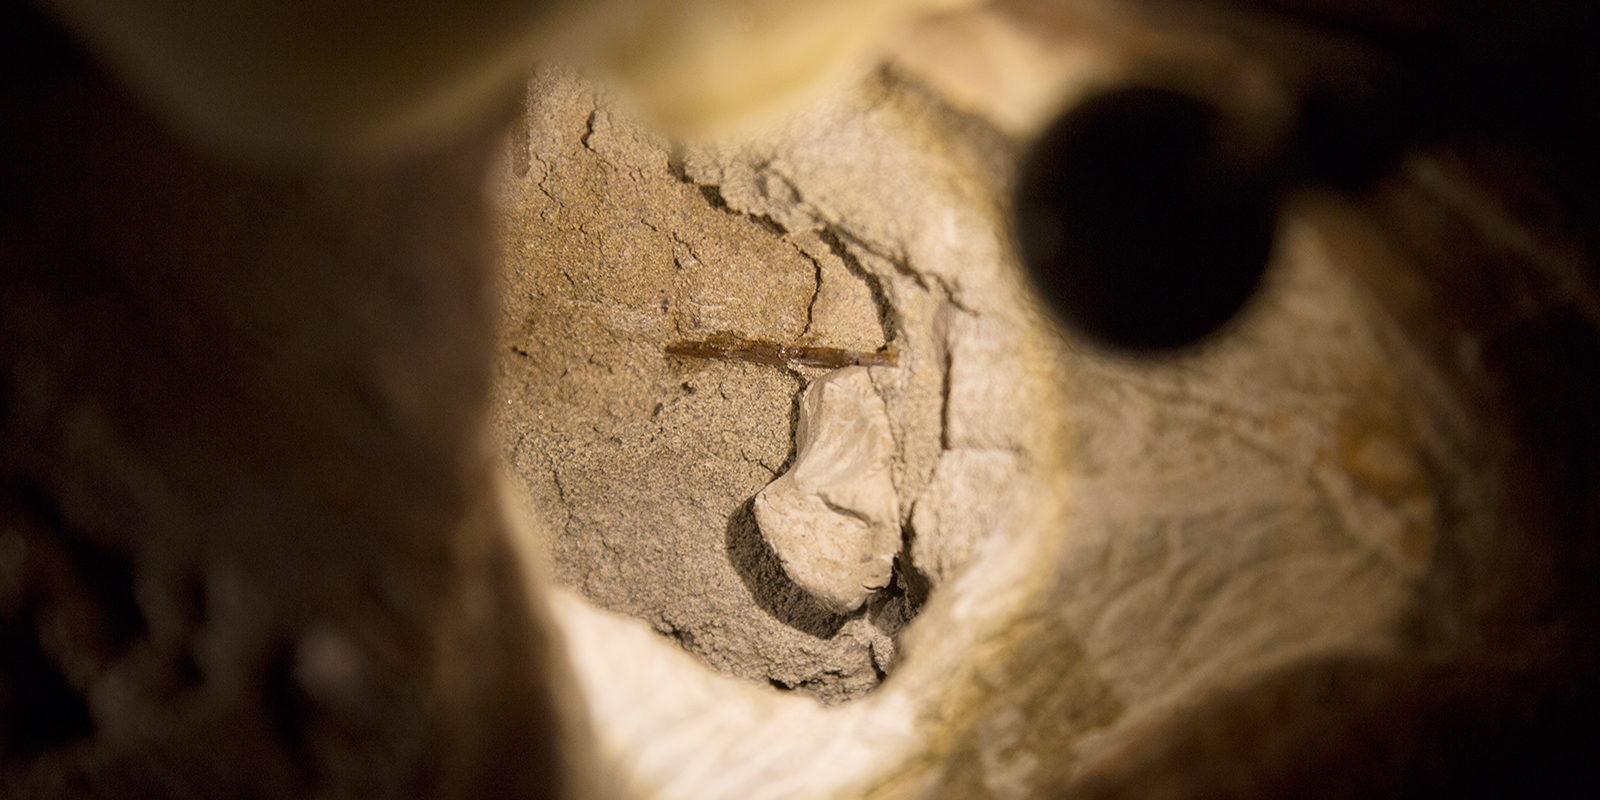 A closeup of a small, fragile bone within the T. rex skull